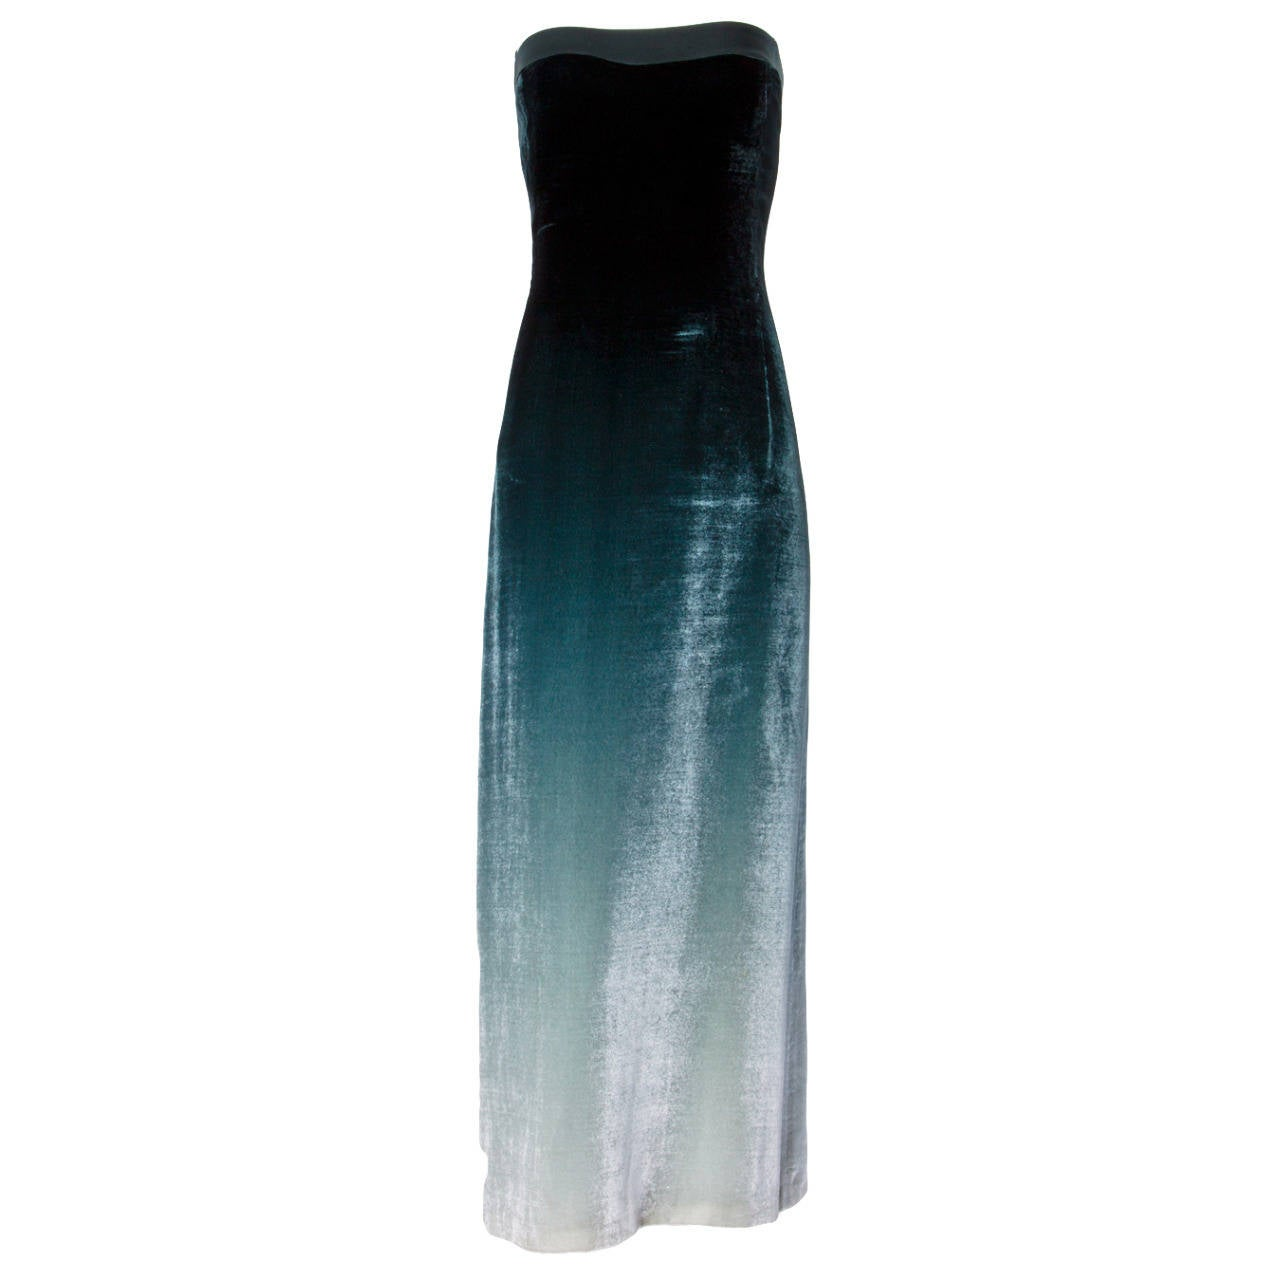 Emanuel Ungaro Plus-Size Green Ombre Silk Velvet Maxi Dress Size XL For Sale